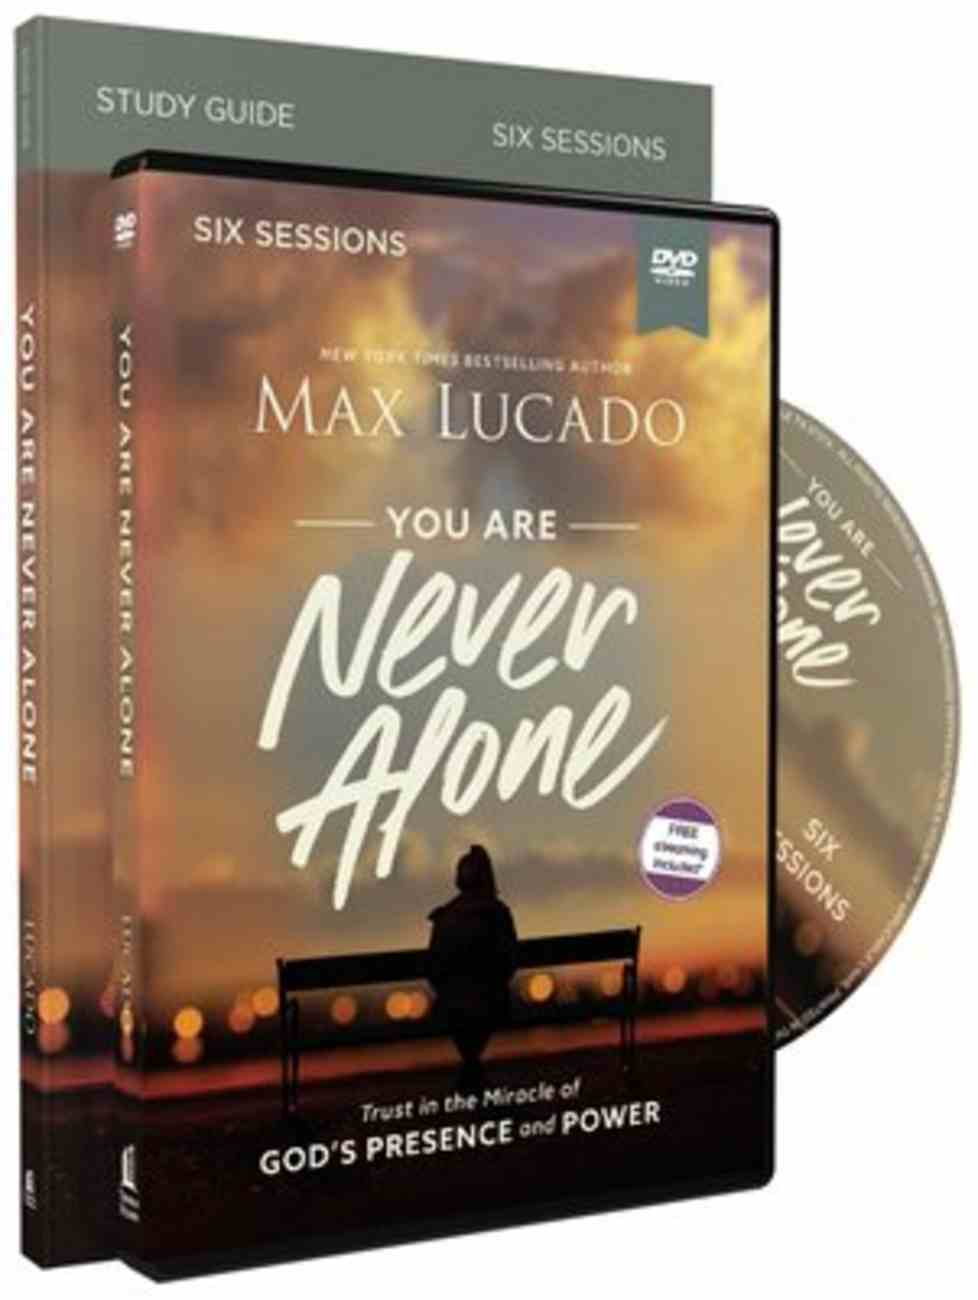 You Are Never Alone: Trust in the Miracle of God's Presence and Power (Study Guide With Dvd) Pack